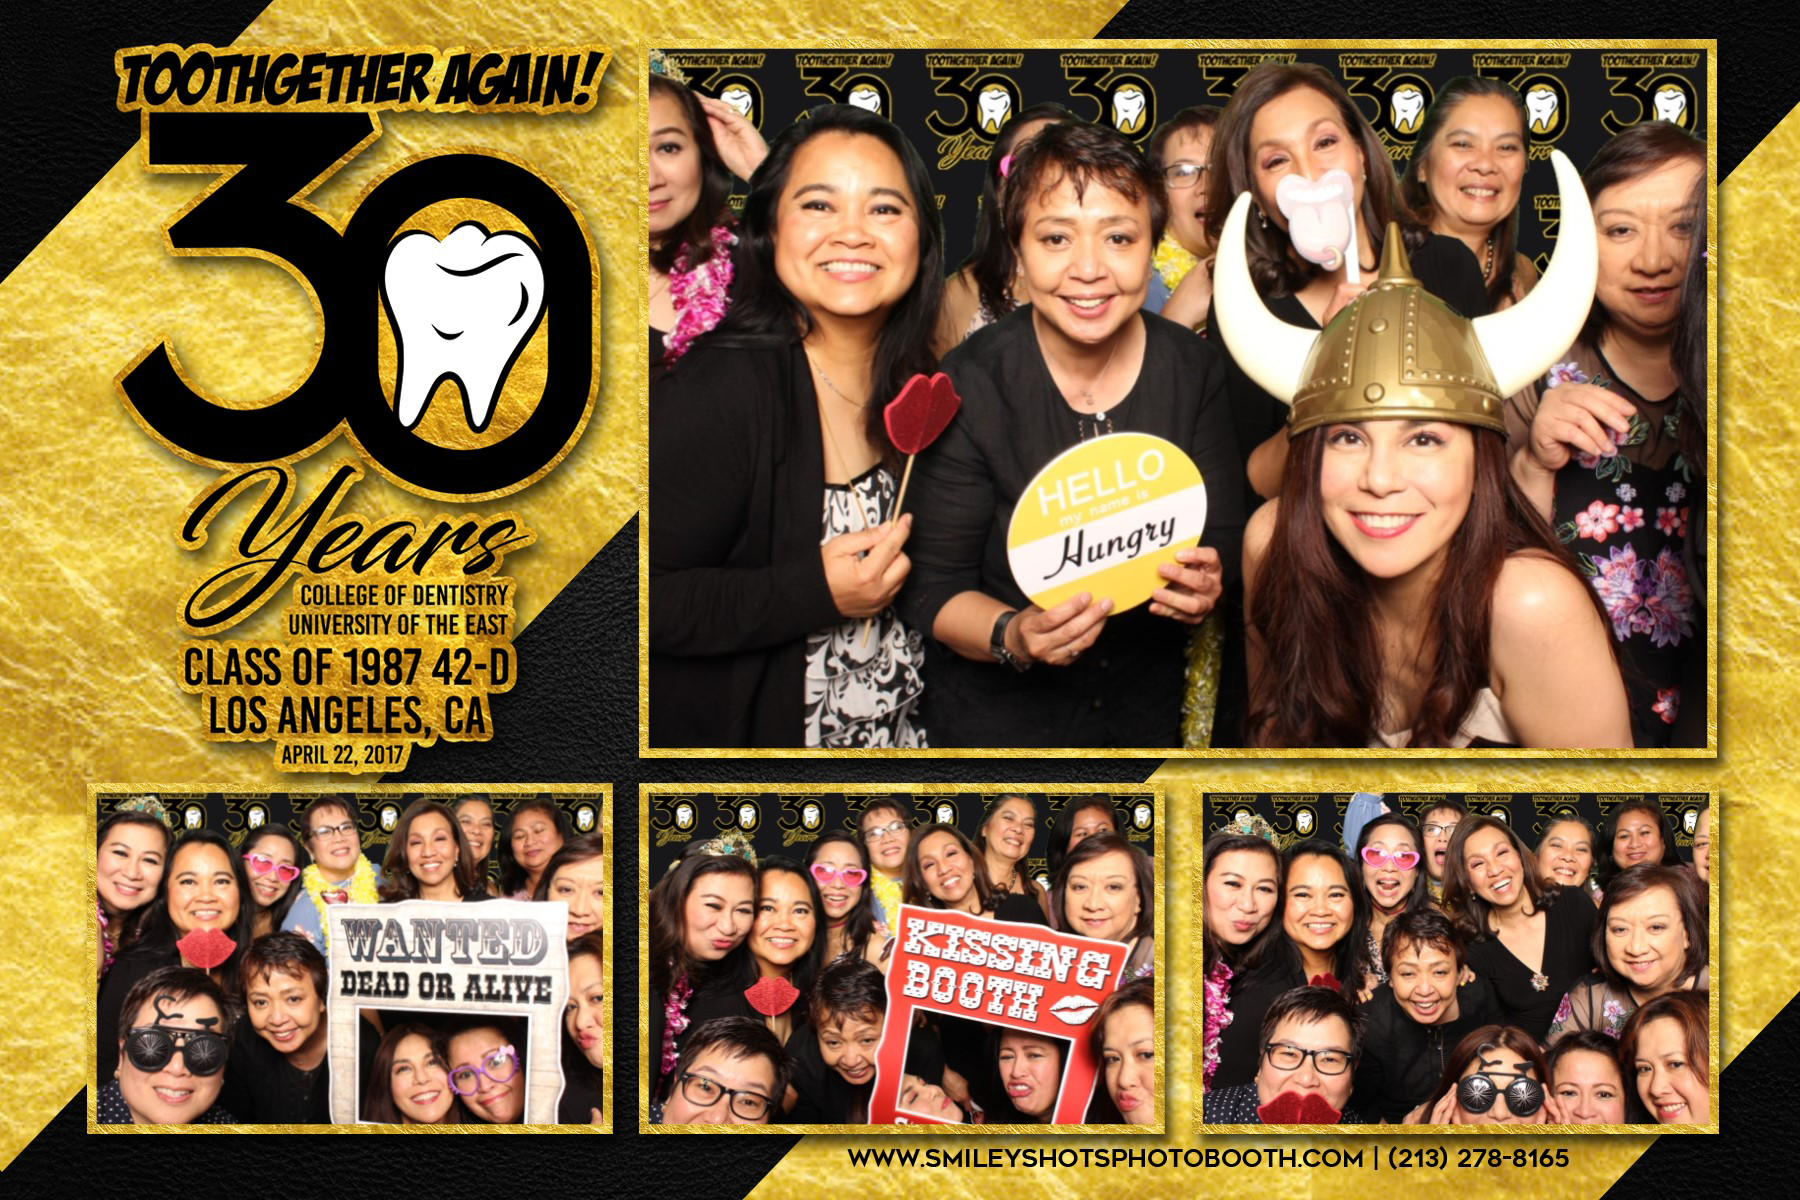 30th Years Dental UE Smiley Shots Photo Booth Photobooth (31).png